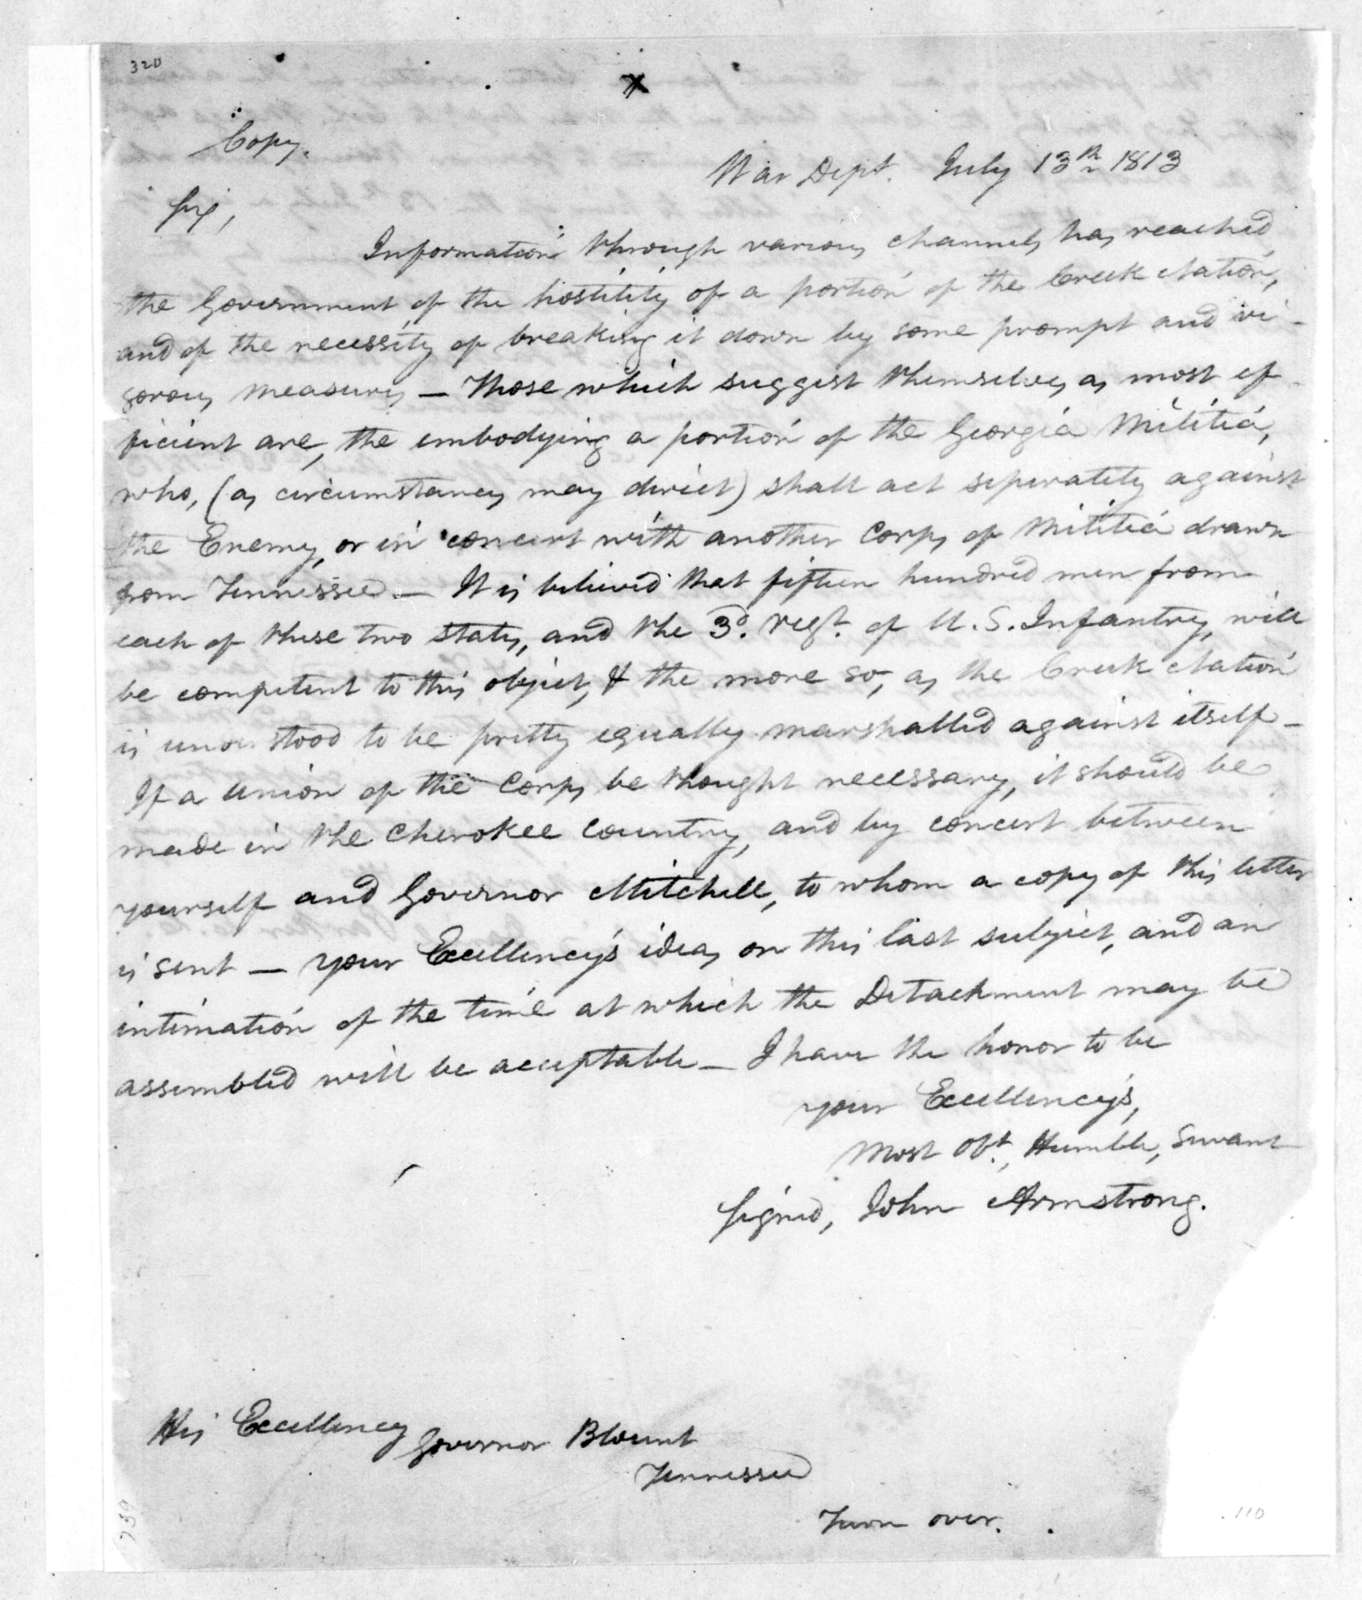 John Armstrong to Willie Blount, July 13, 1813